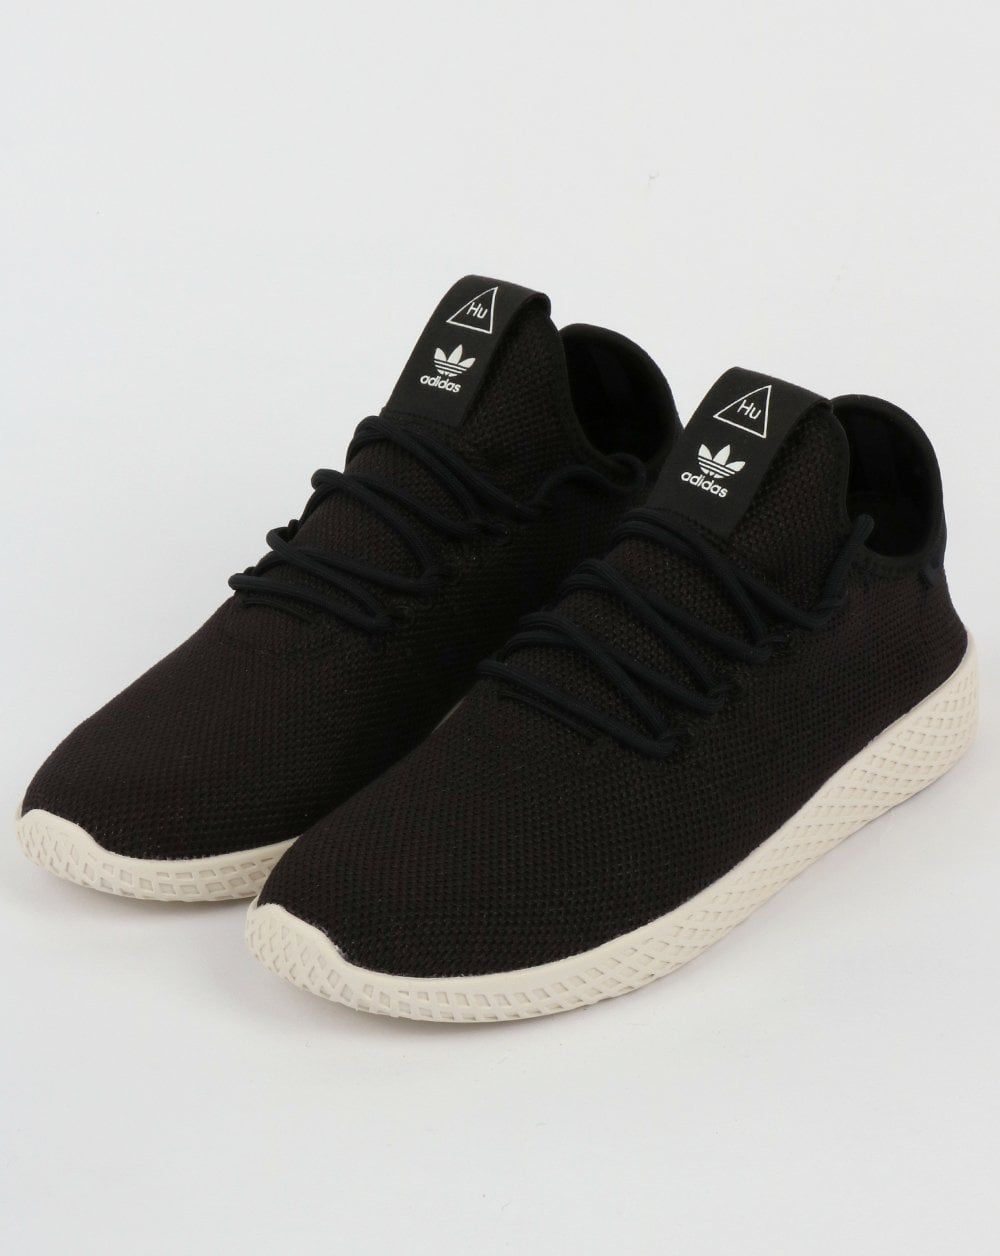 official photos 86045 9cde3 adidas Trainers Adidas PW Tennis HU Trainers Black Black White